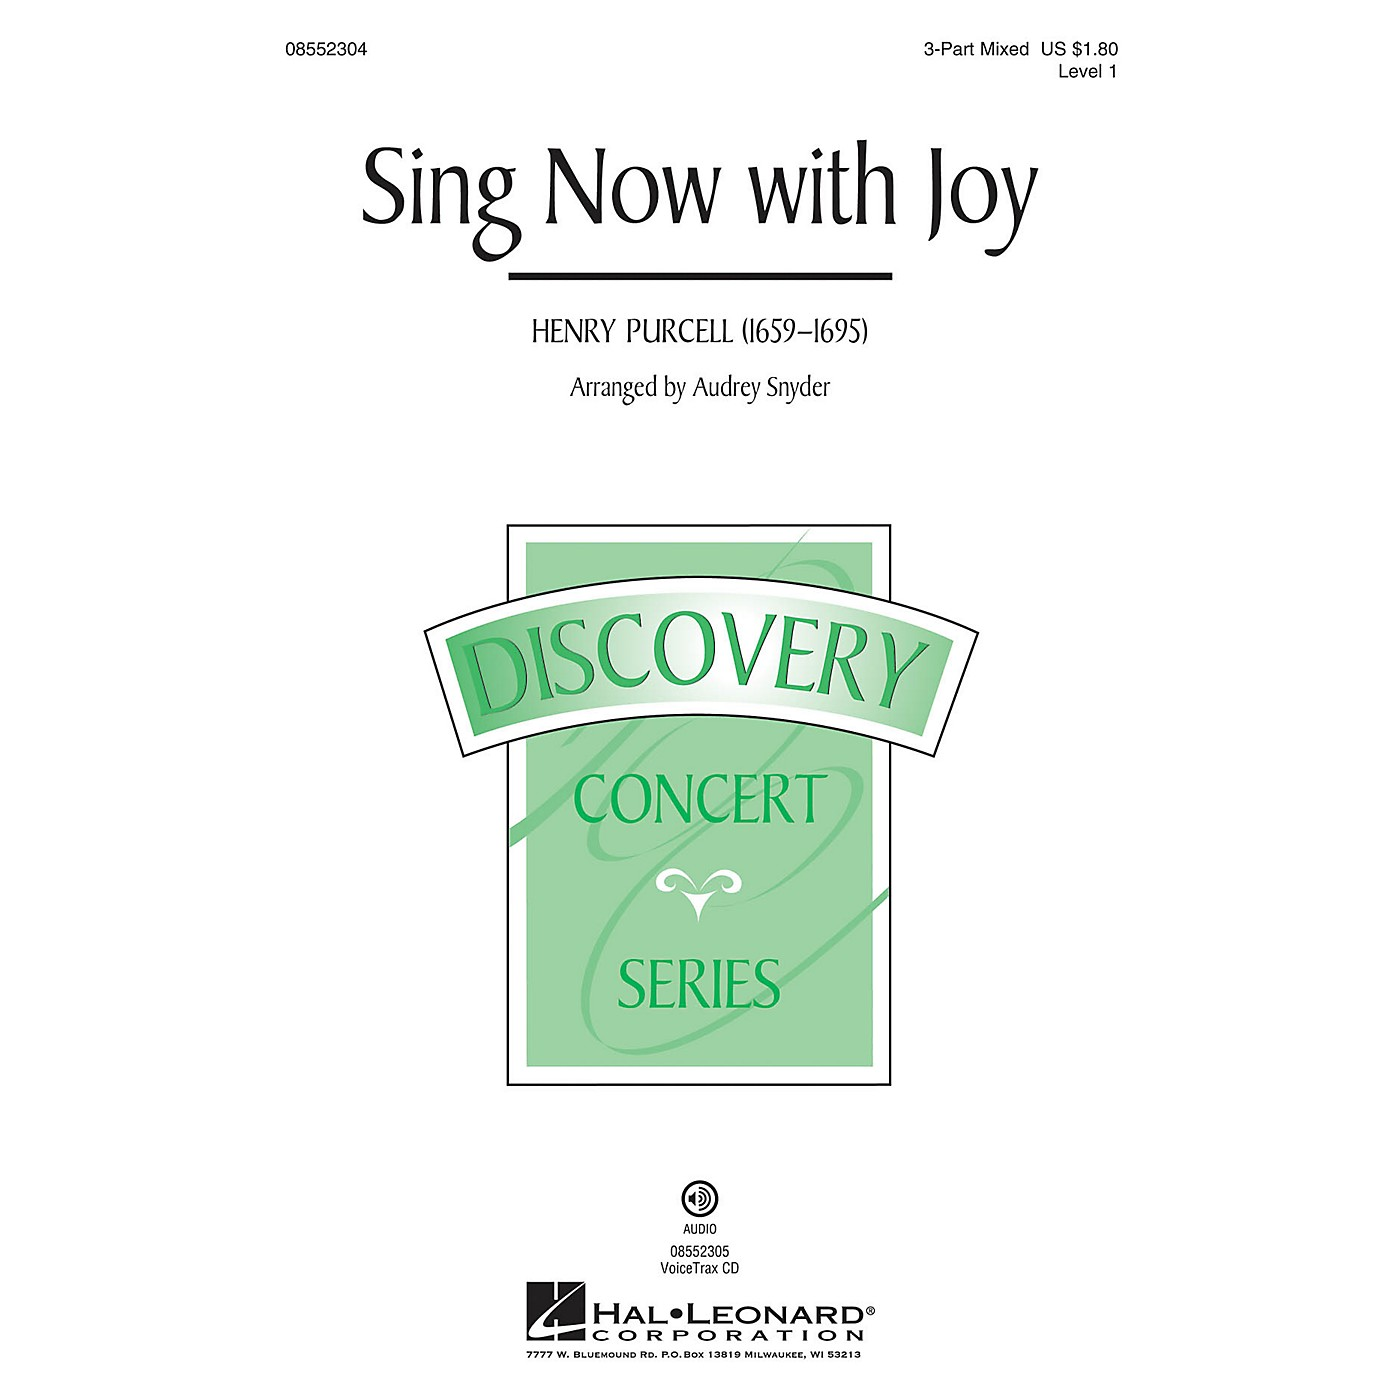 Hal Leonard Sing Now with Joy (Discovery Level 1) 3-Part Mixed arranged by Audrey Snyder thumbnail